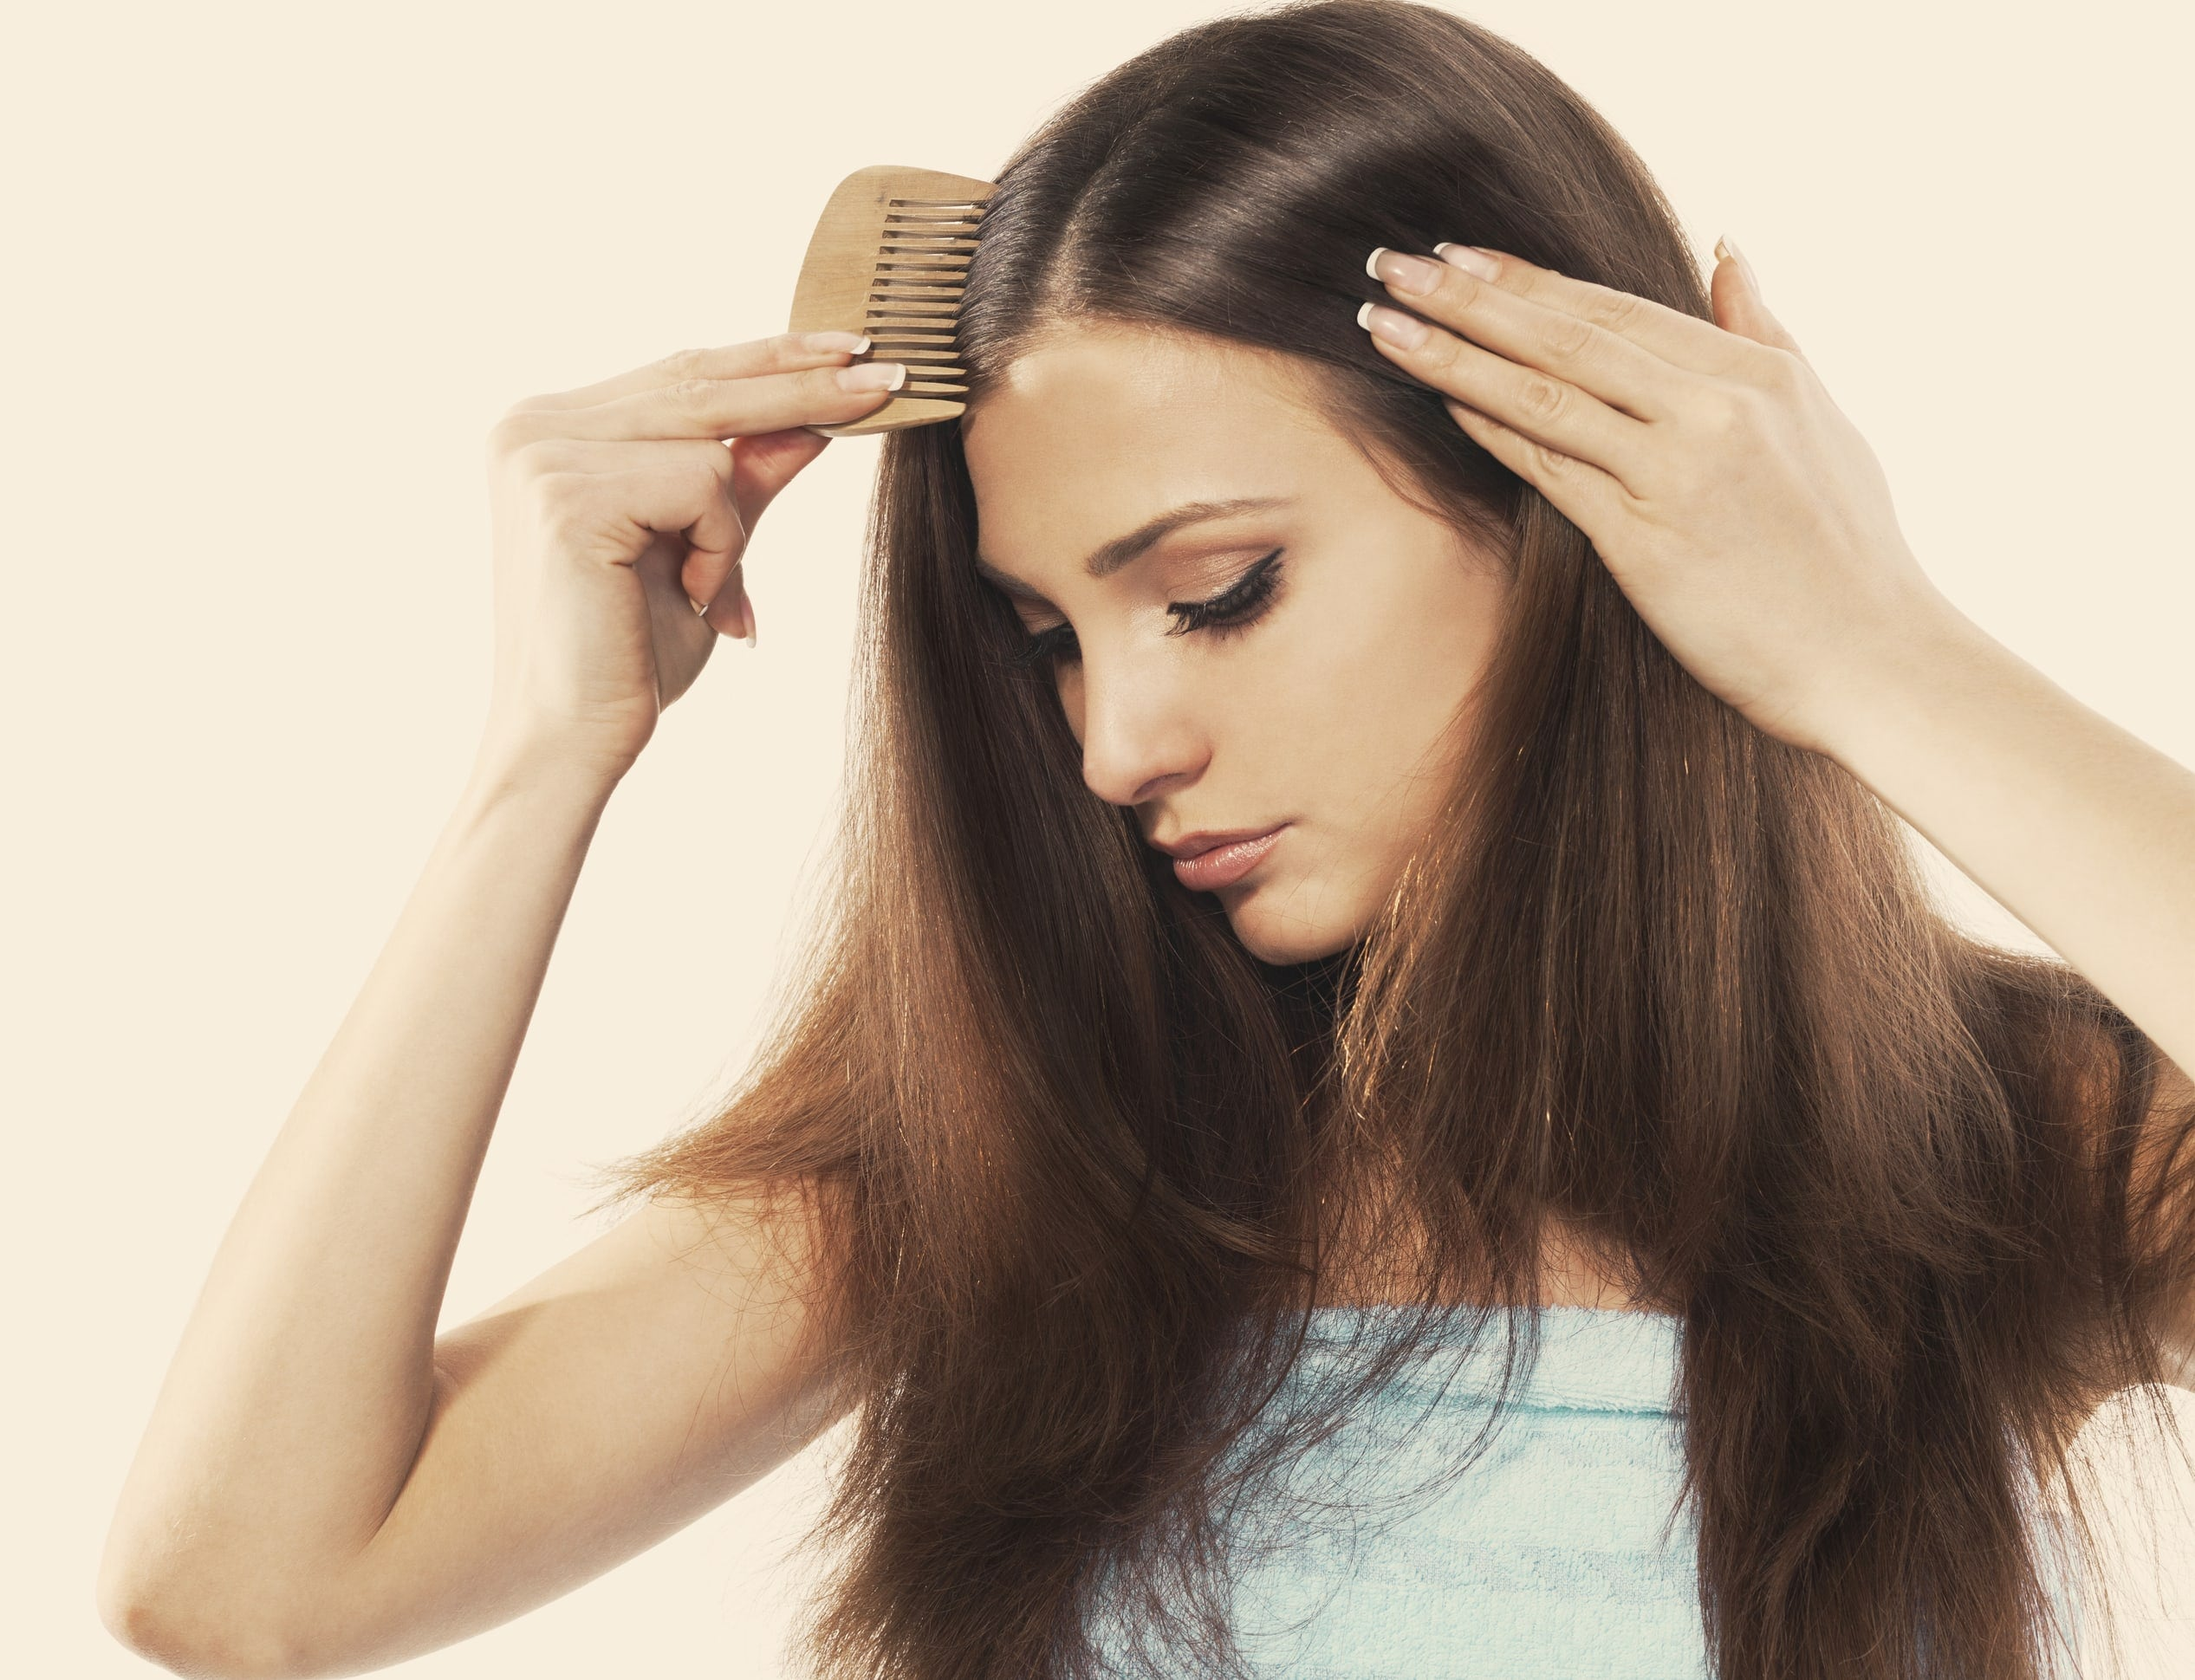 Losing Hair 5 Tips To Help You Deal With Thinning Hair